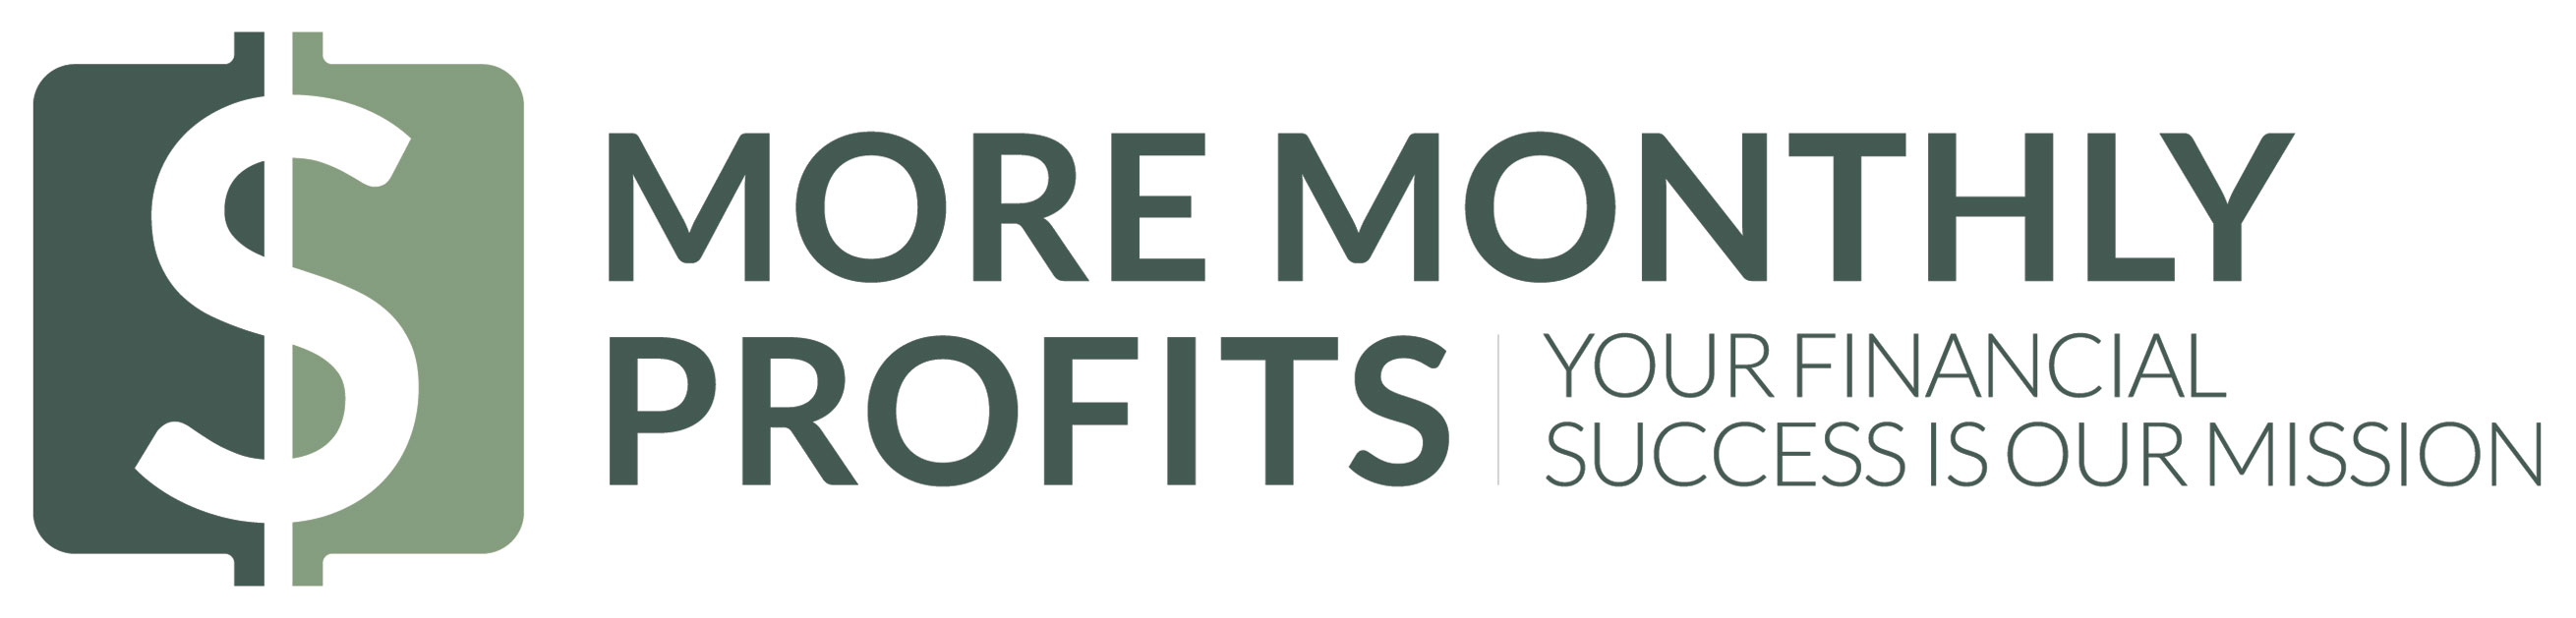 More Monthly Profits - Your Financial Success Is Our Mission